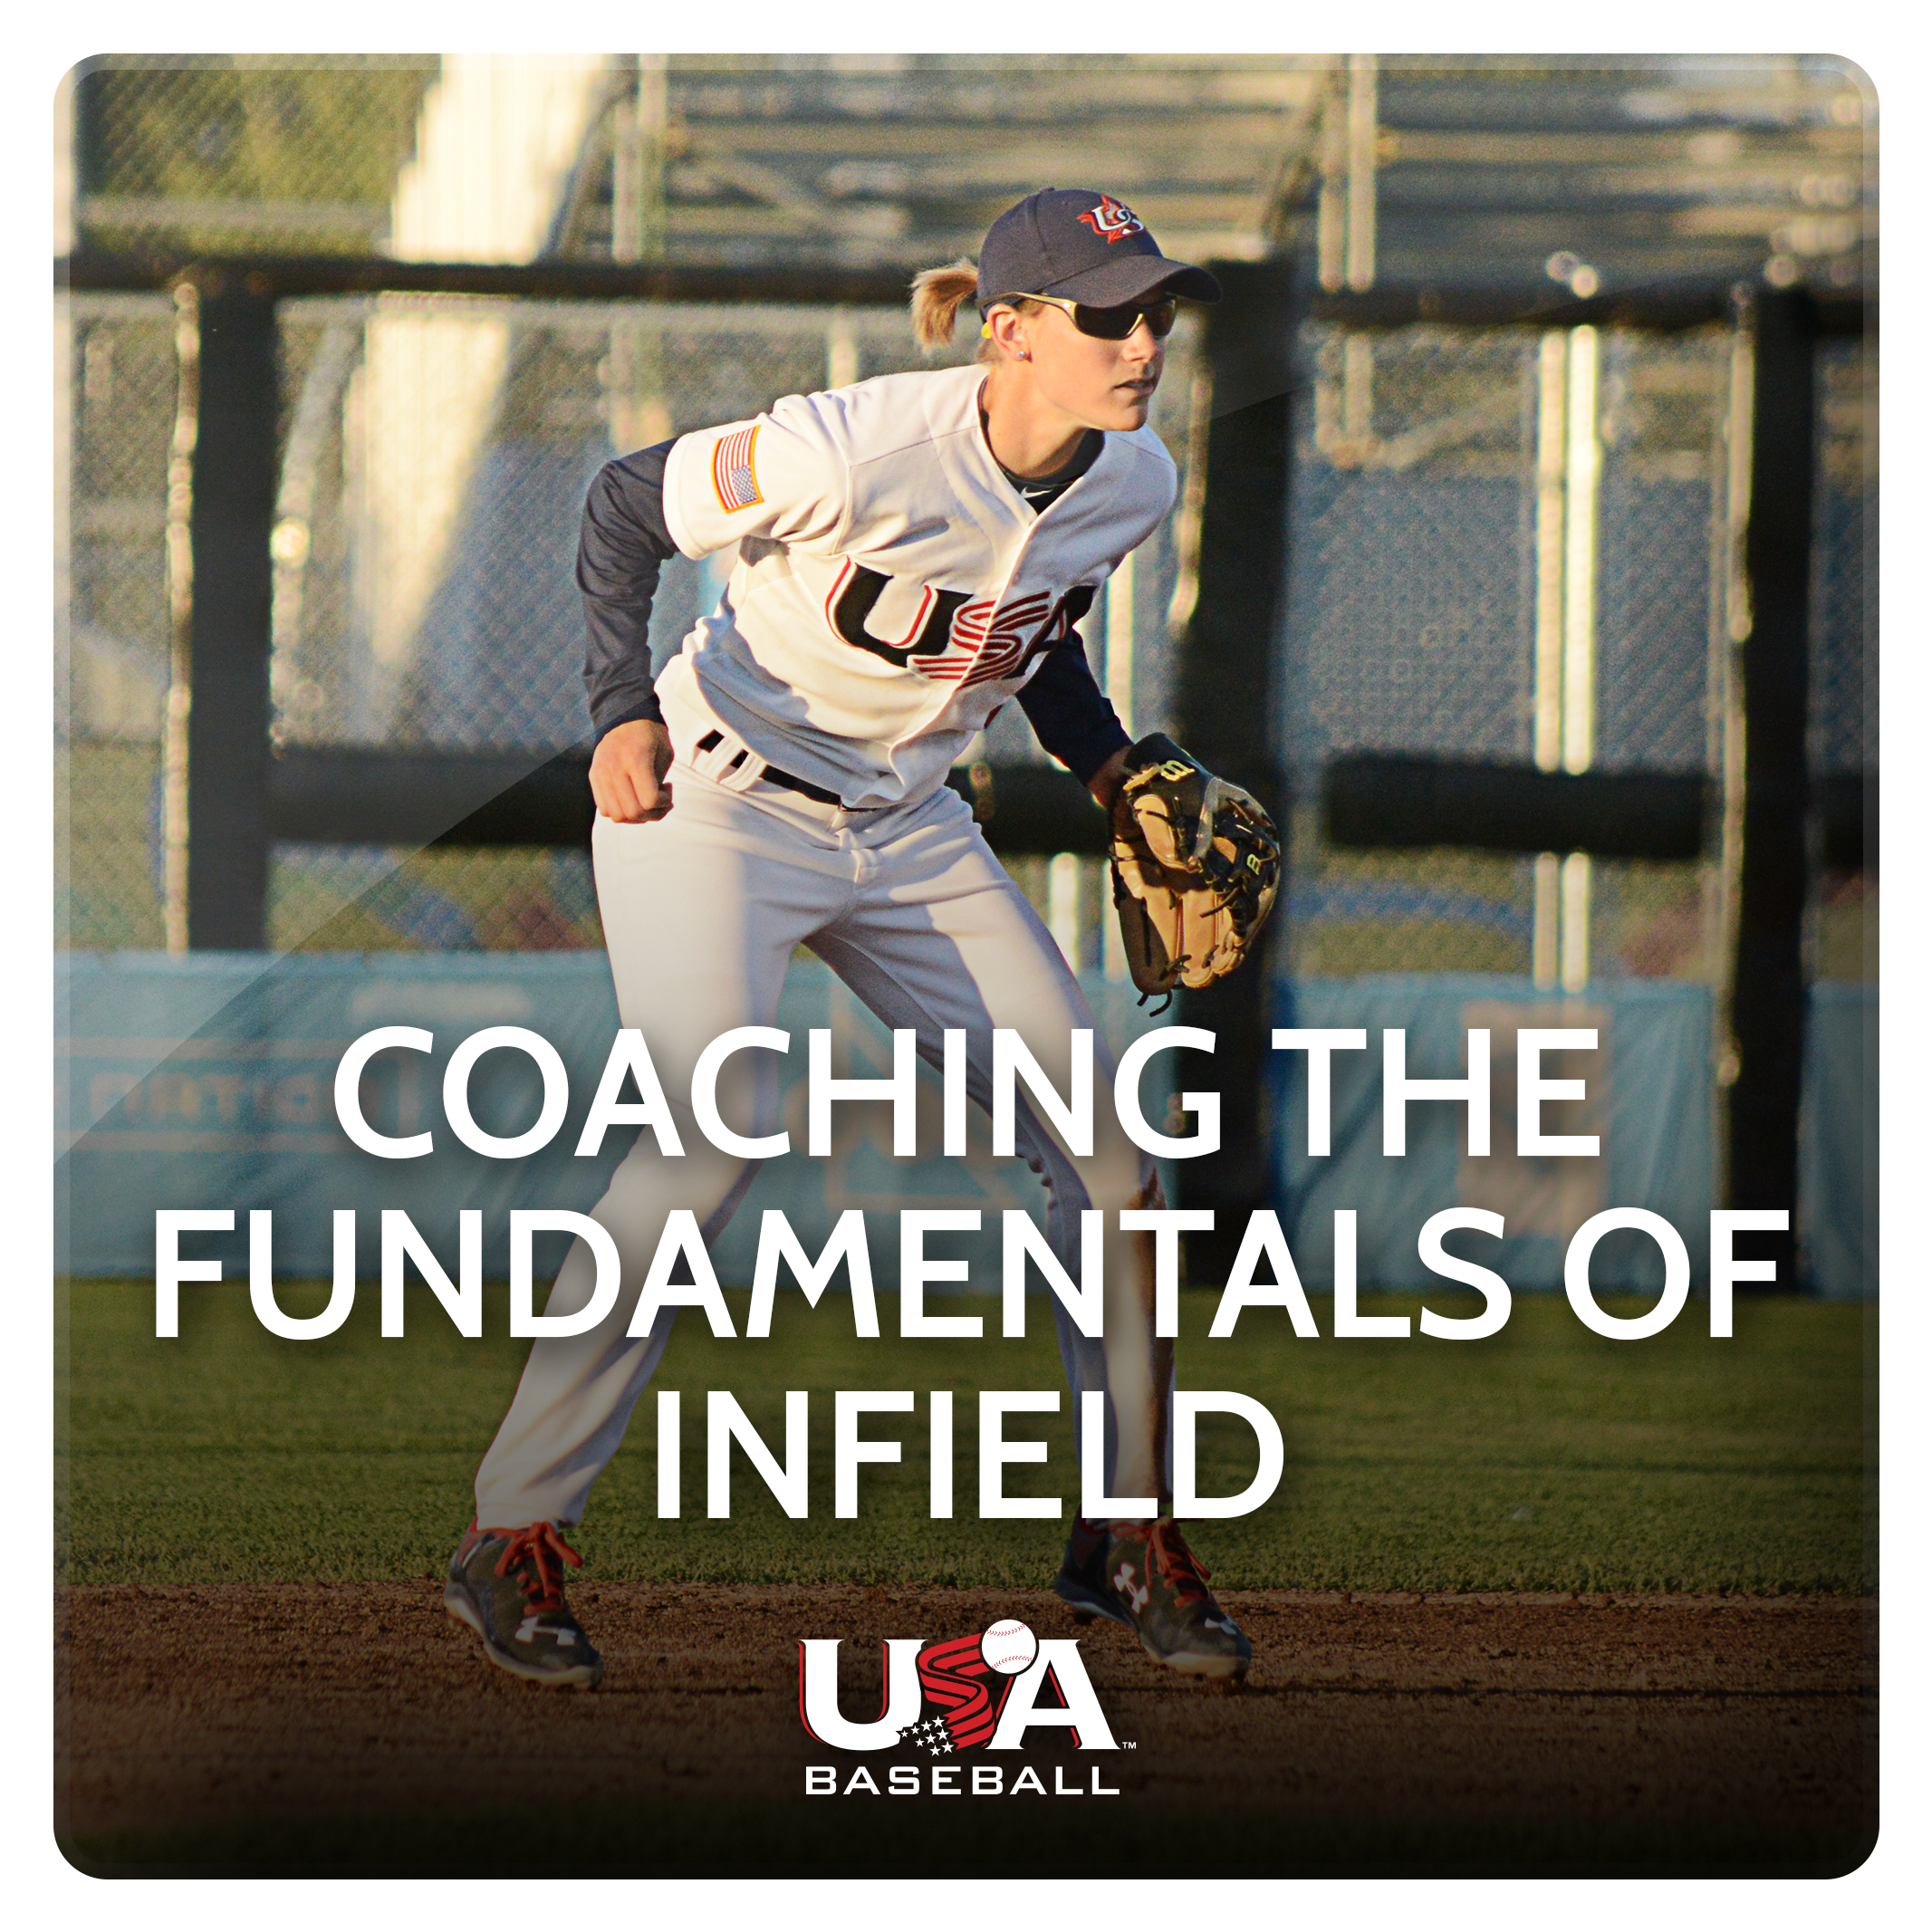 Coaching the Fundamentals of Infield